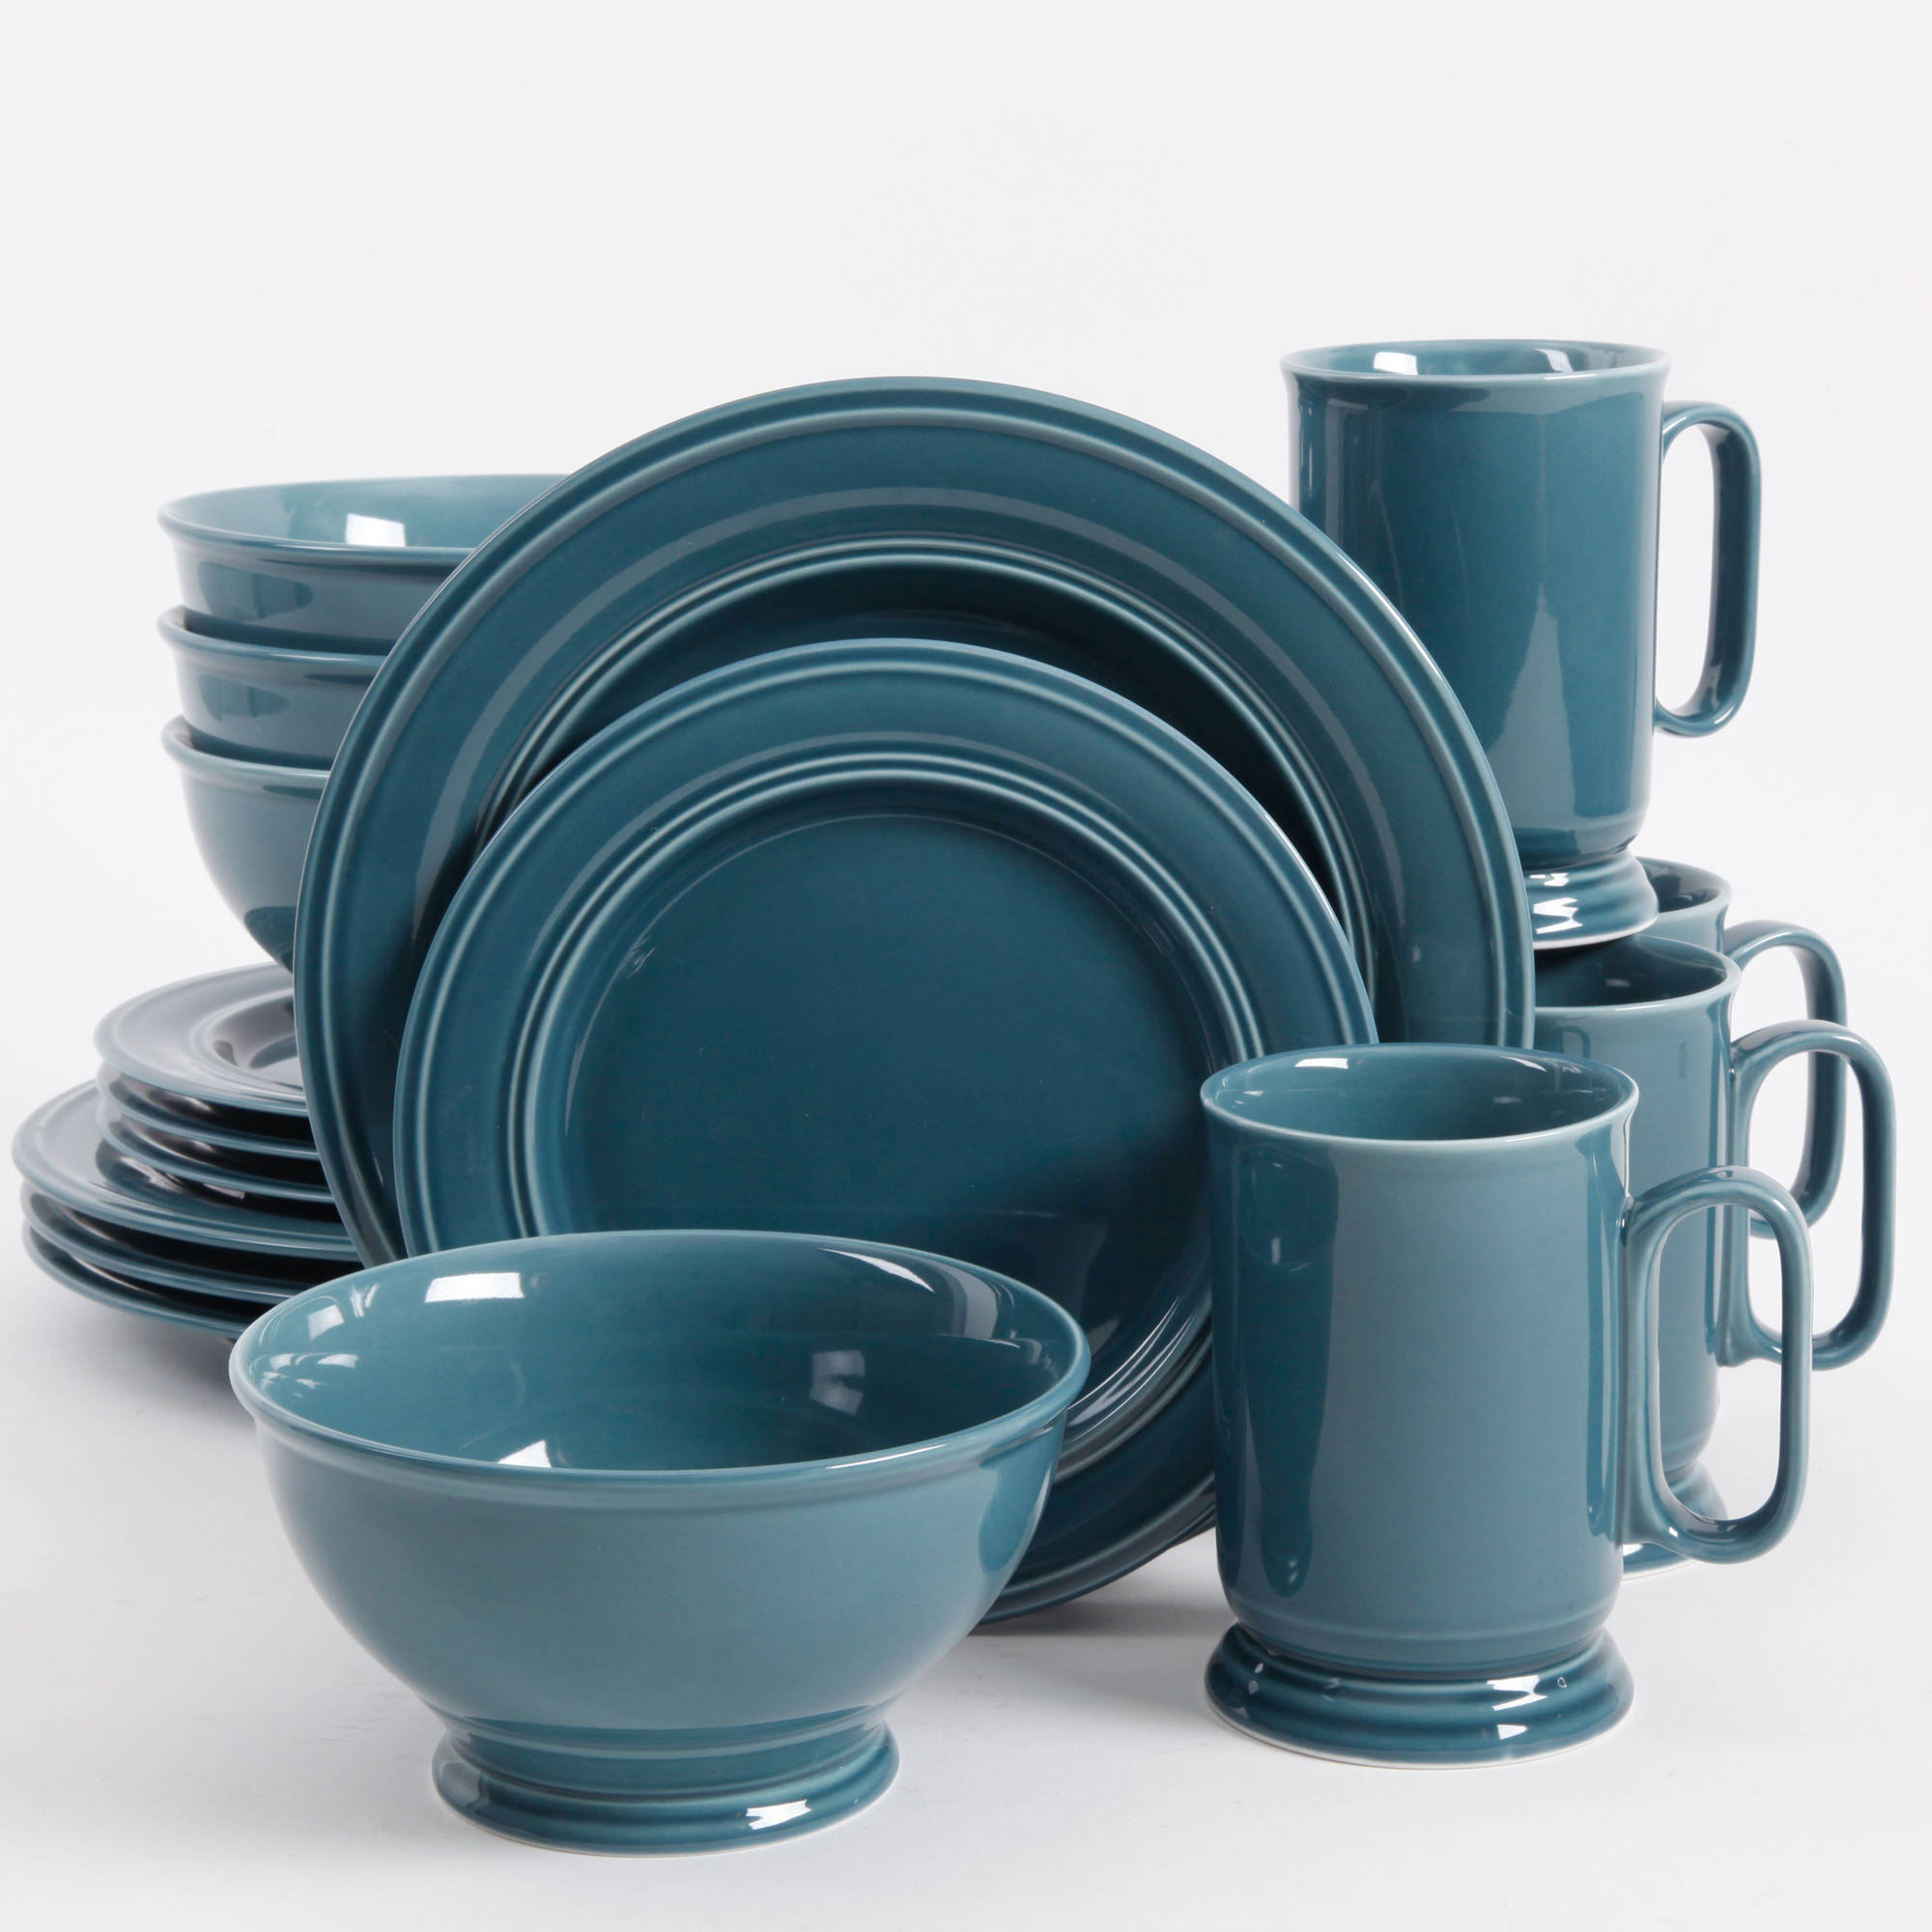 Better Homes and Gardens Admiraware 16-Piece Dinnerware Set, Round